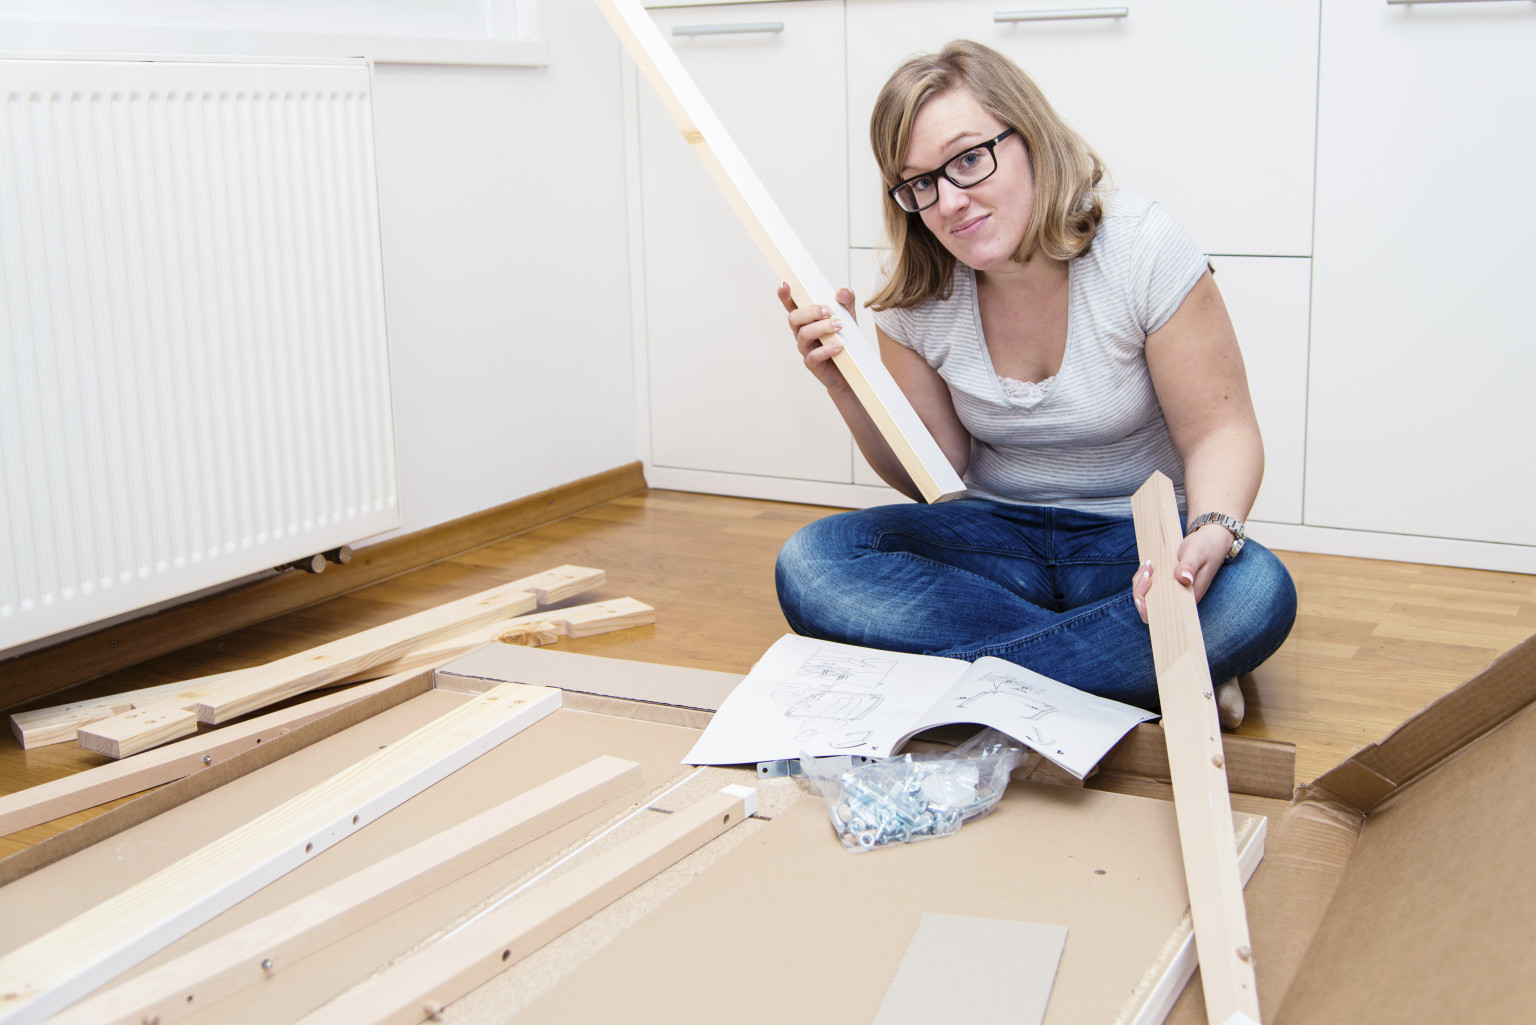 Flat pack furniture assembly tips hirerush blog for Tools to assemble ikea furniture